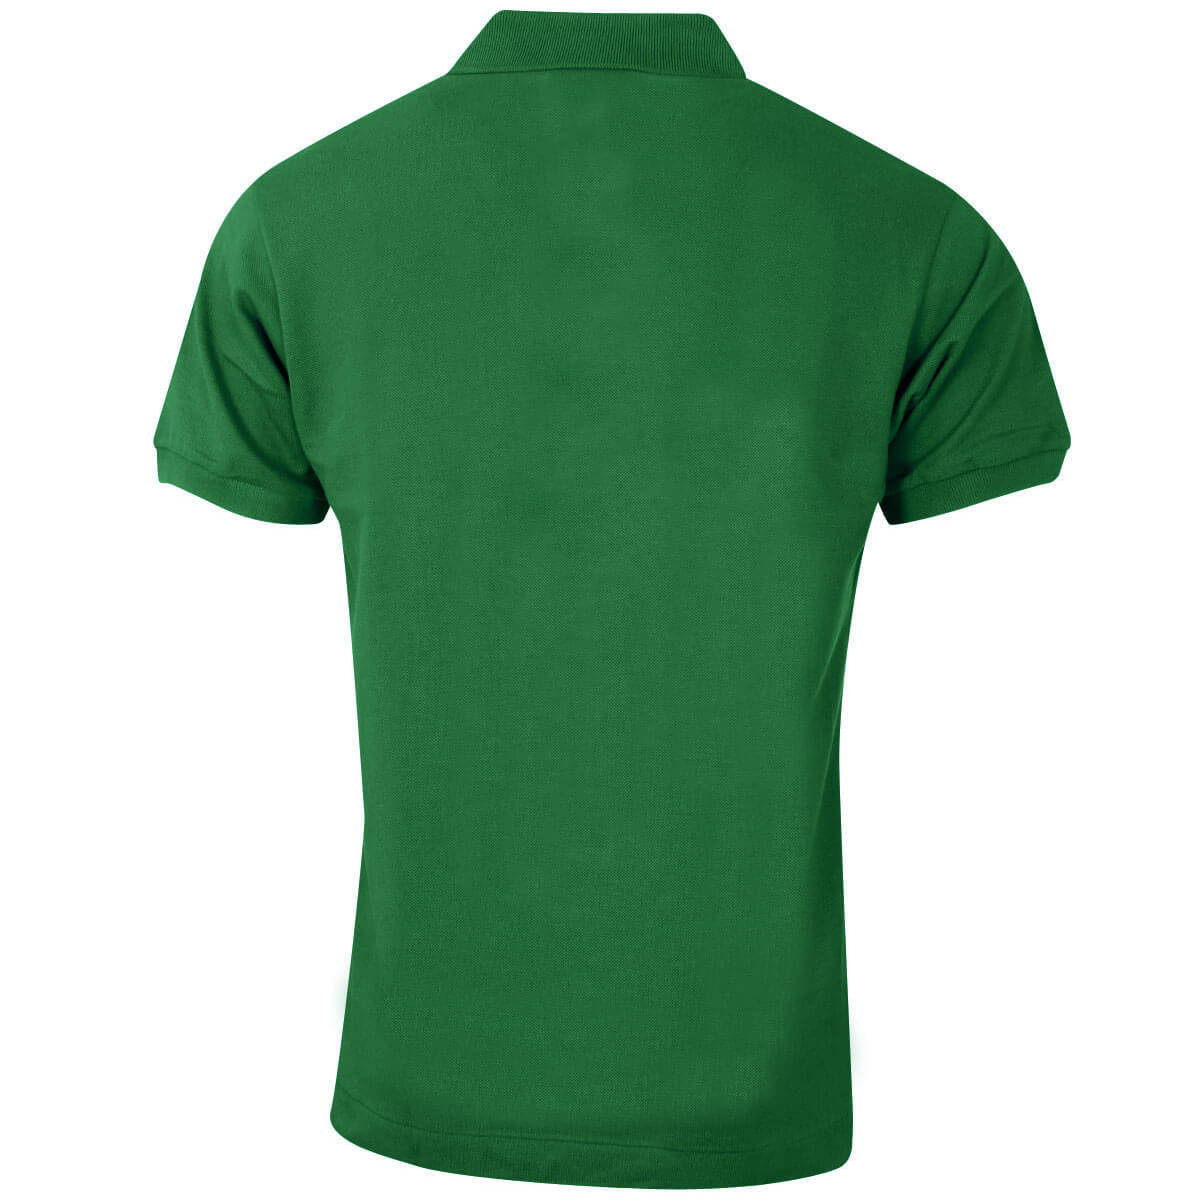 Lacoste-Mens-Classic-Cotton-L1212-Short-Sleeve-Polo-Shirt-26-OFF-RRP thumbnail 67